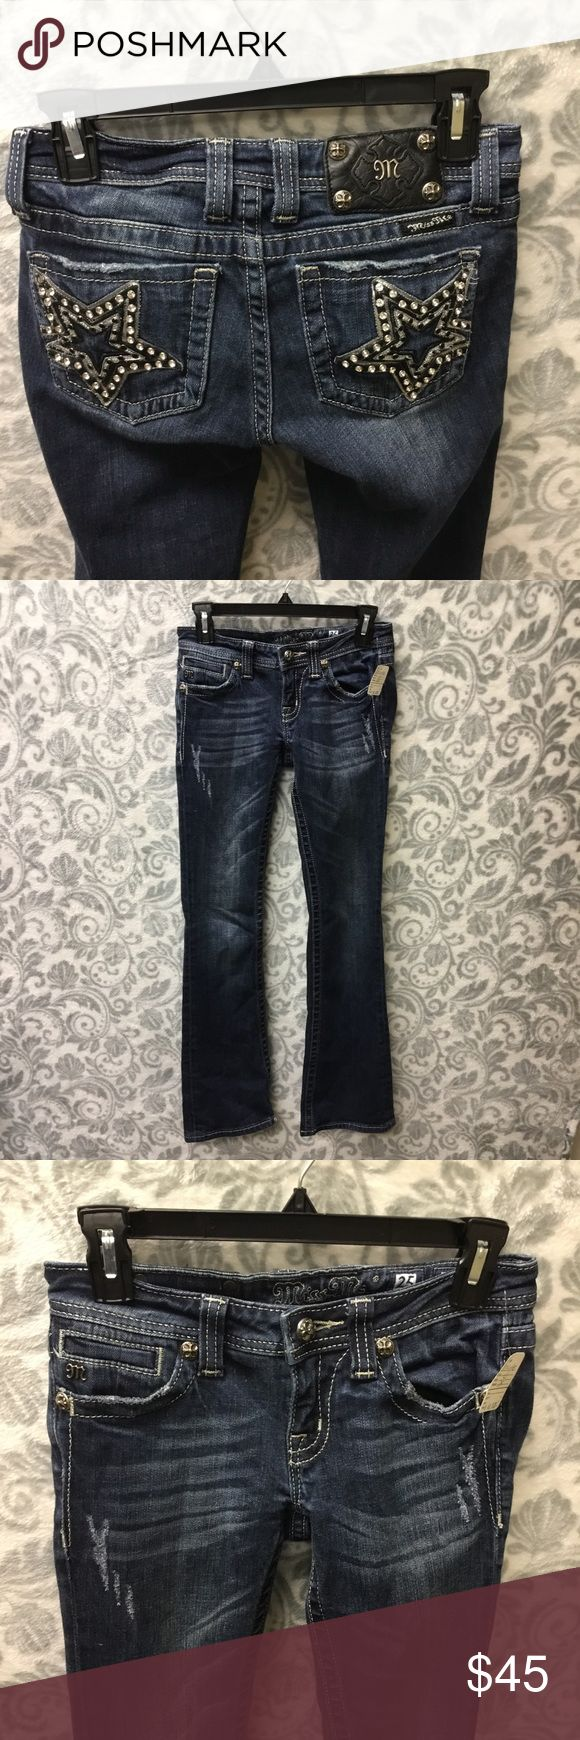 Miss Me Bootcut star embellished jeans size 25 Excellent condition (any fading/rips/distressed look was done by the designer)  Awesome star design on back  No wear in crotch  PRICE IS FIRM UNLESS BUNDLED  If you have any questions or need any measurements not included in the pictures, please feel free to ask ❤️   Bundle and save 💙 Miss Me Jeans Boot Cut